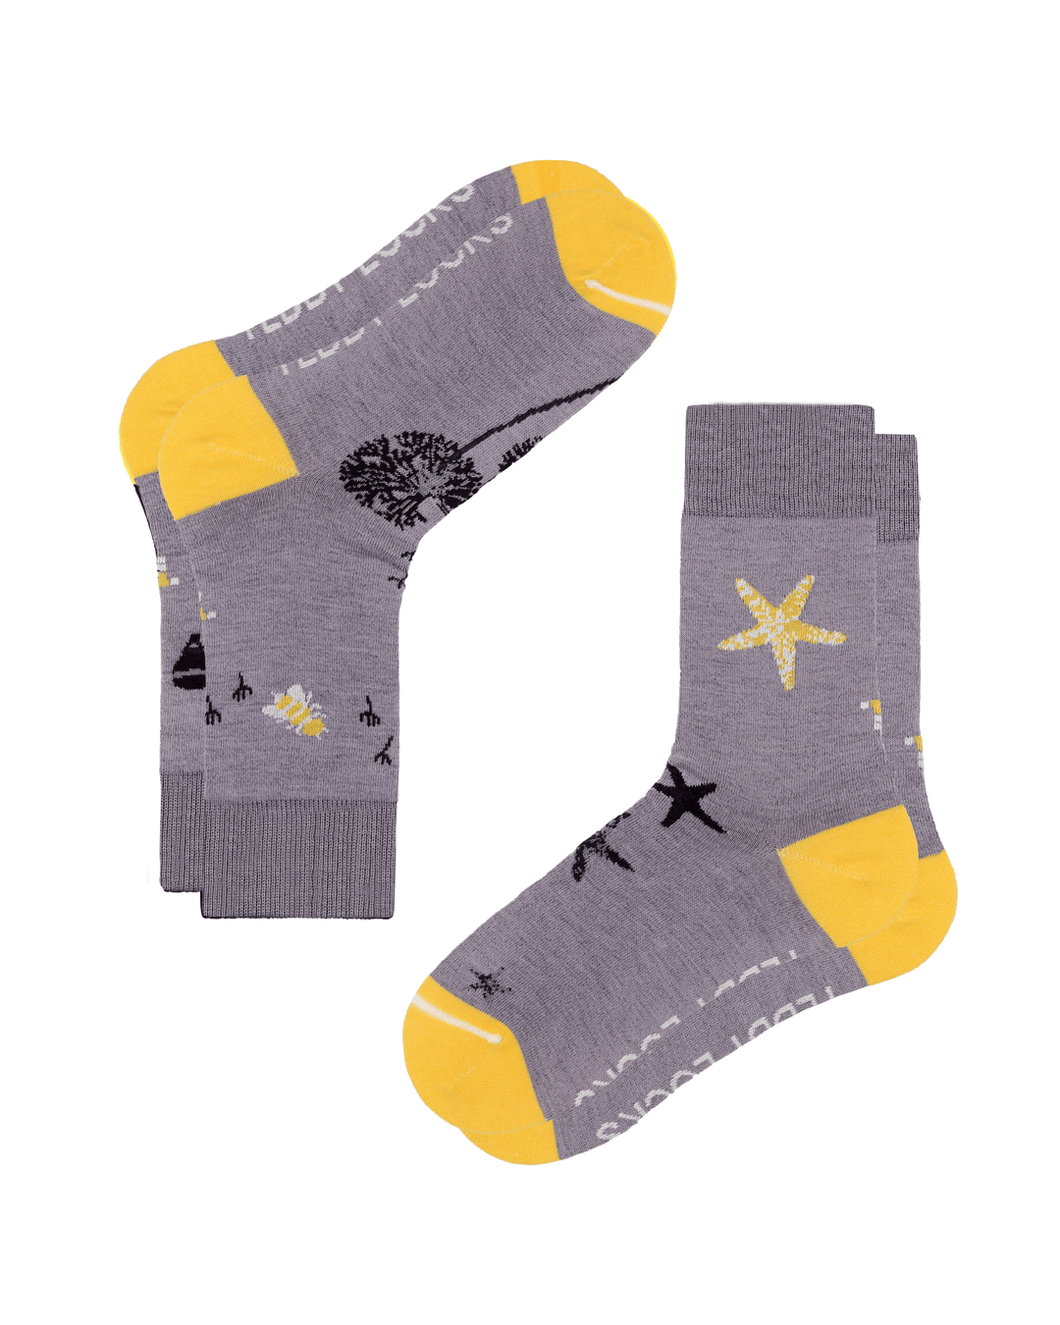 womens crew socks. Light purple ecofriendly socks for women. Yellow patterned socks with hot air ballloon bumble bee pirate-ship and starfish patterns.